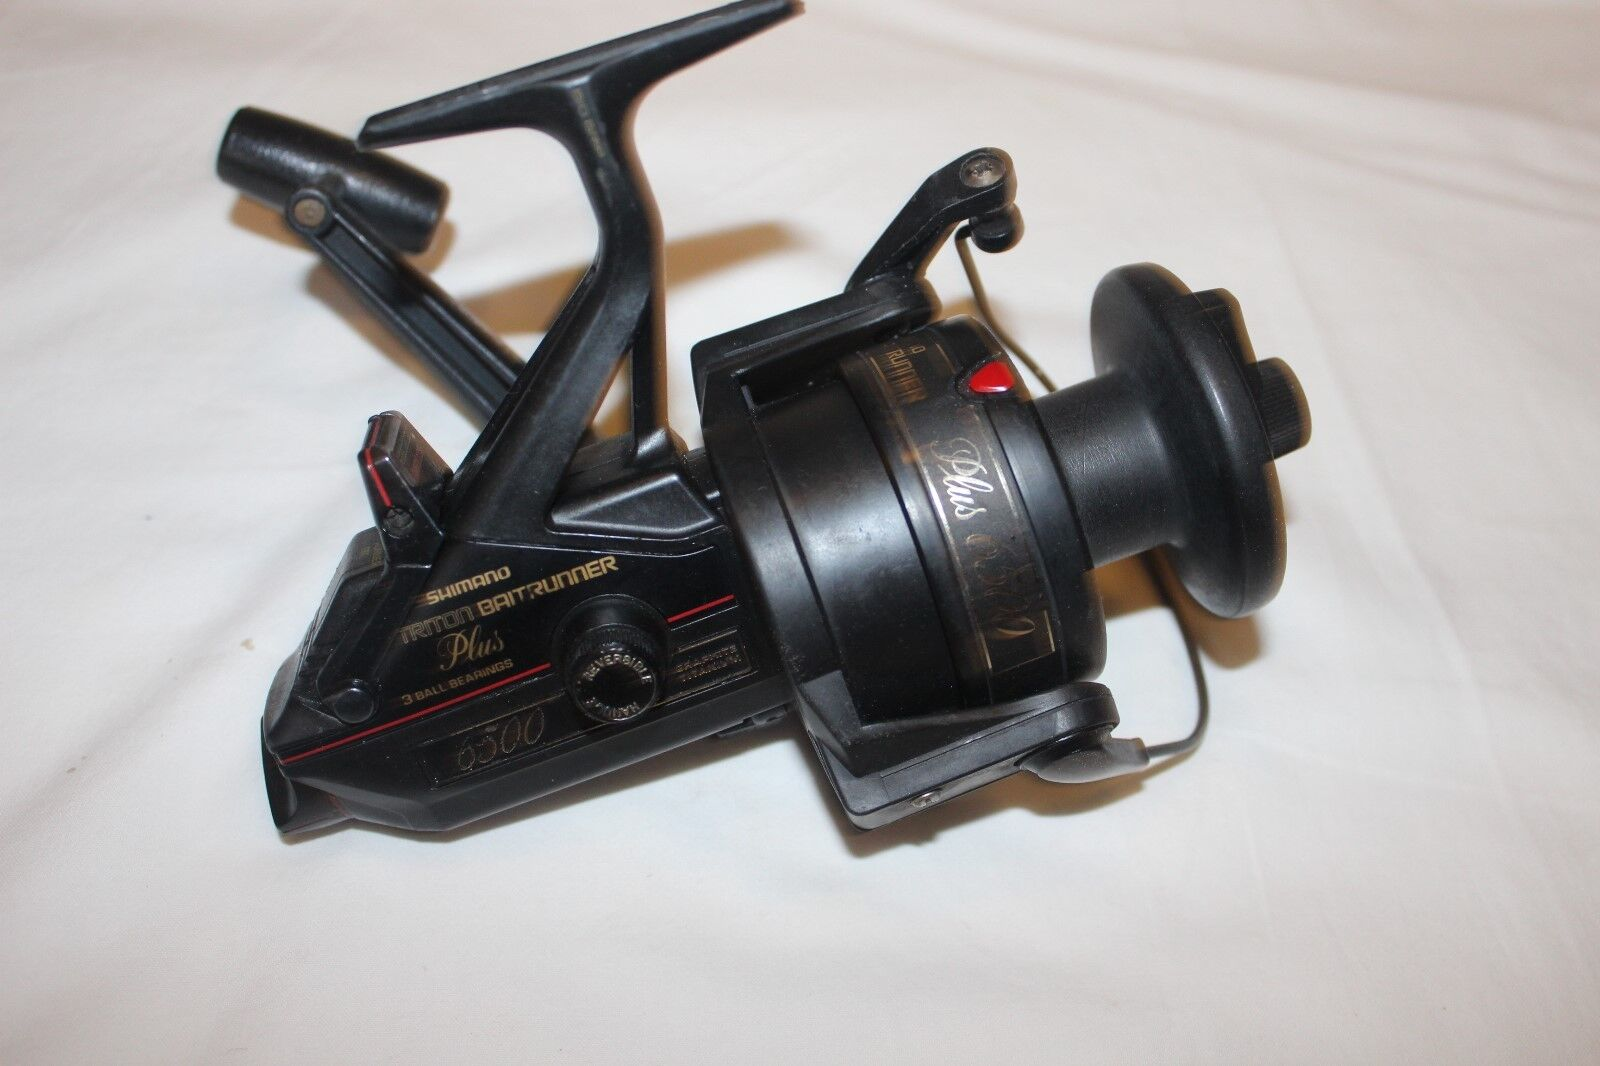 SHIMANO BAITRUNNER 6500-MADE IN JAPAN-Nr-1173